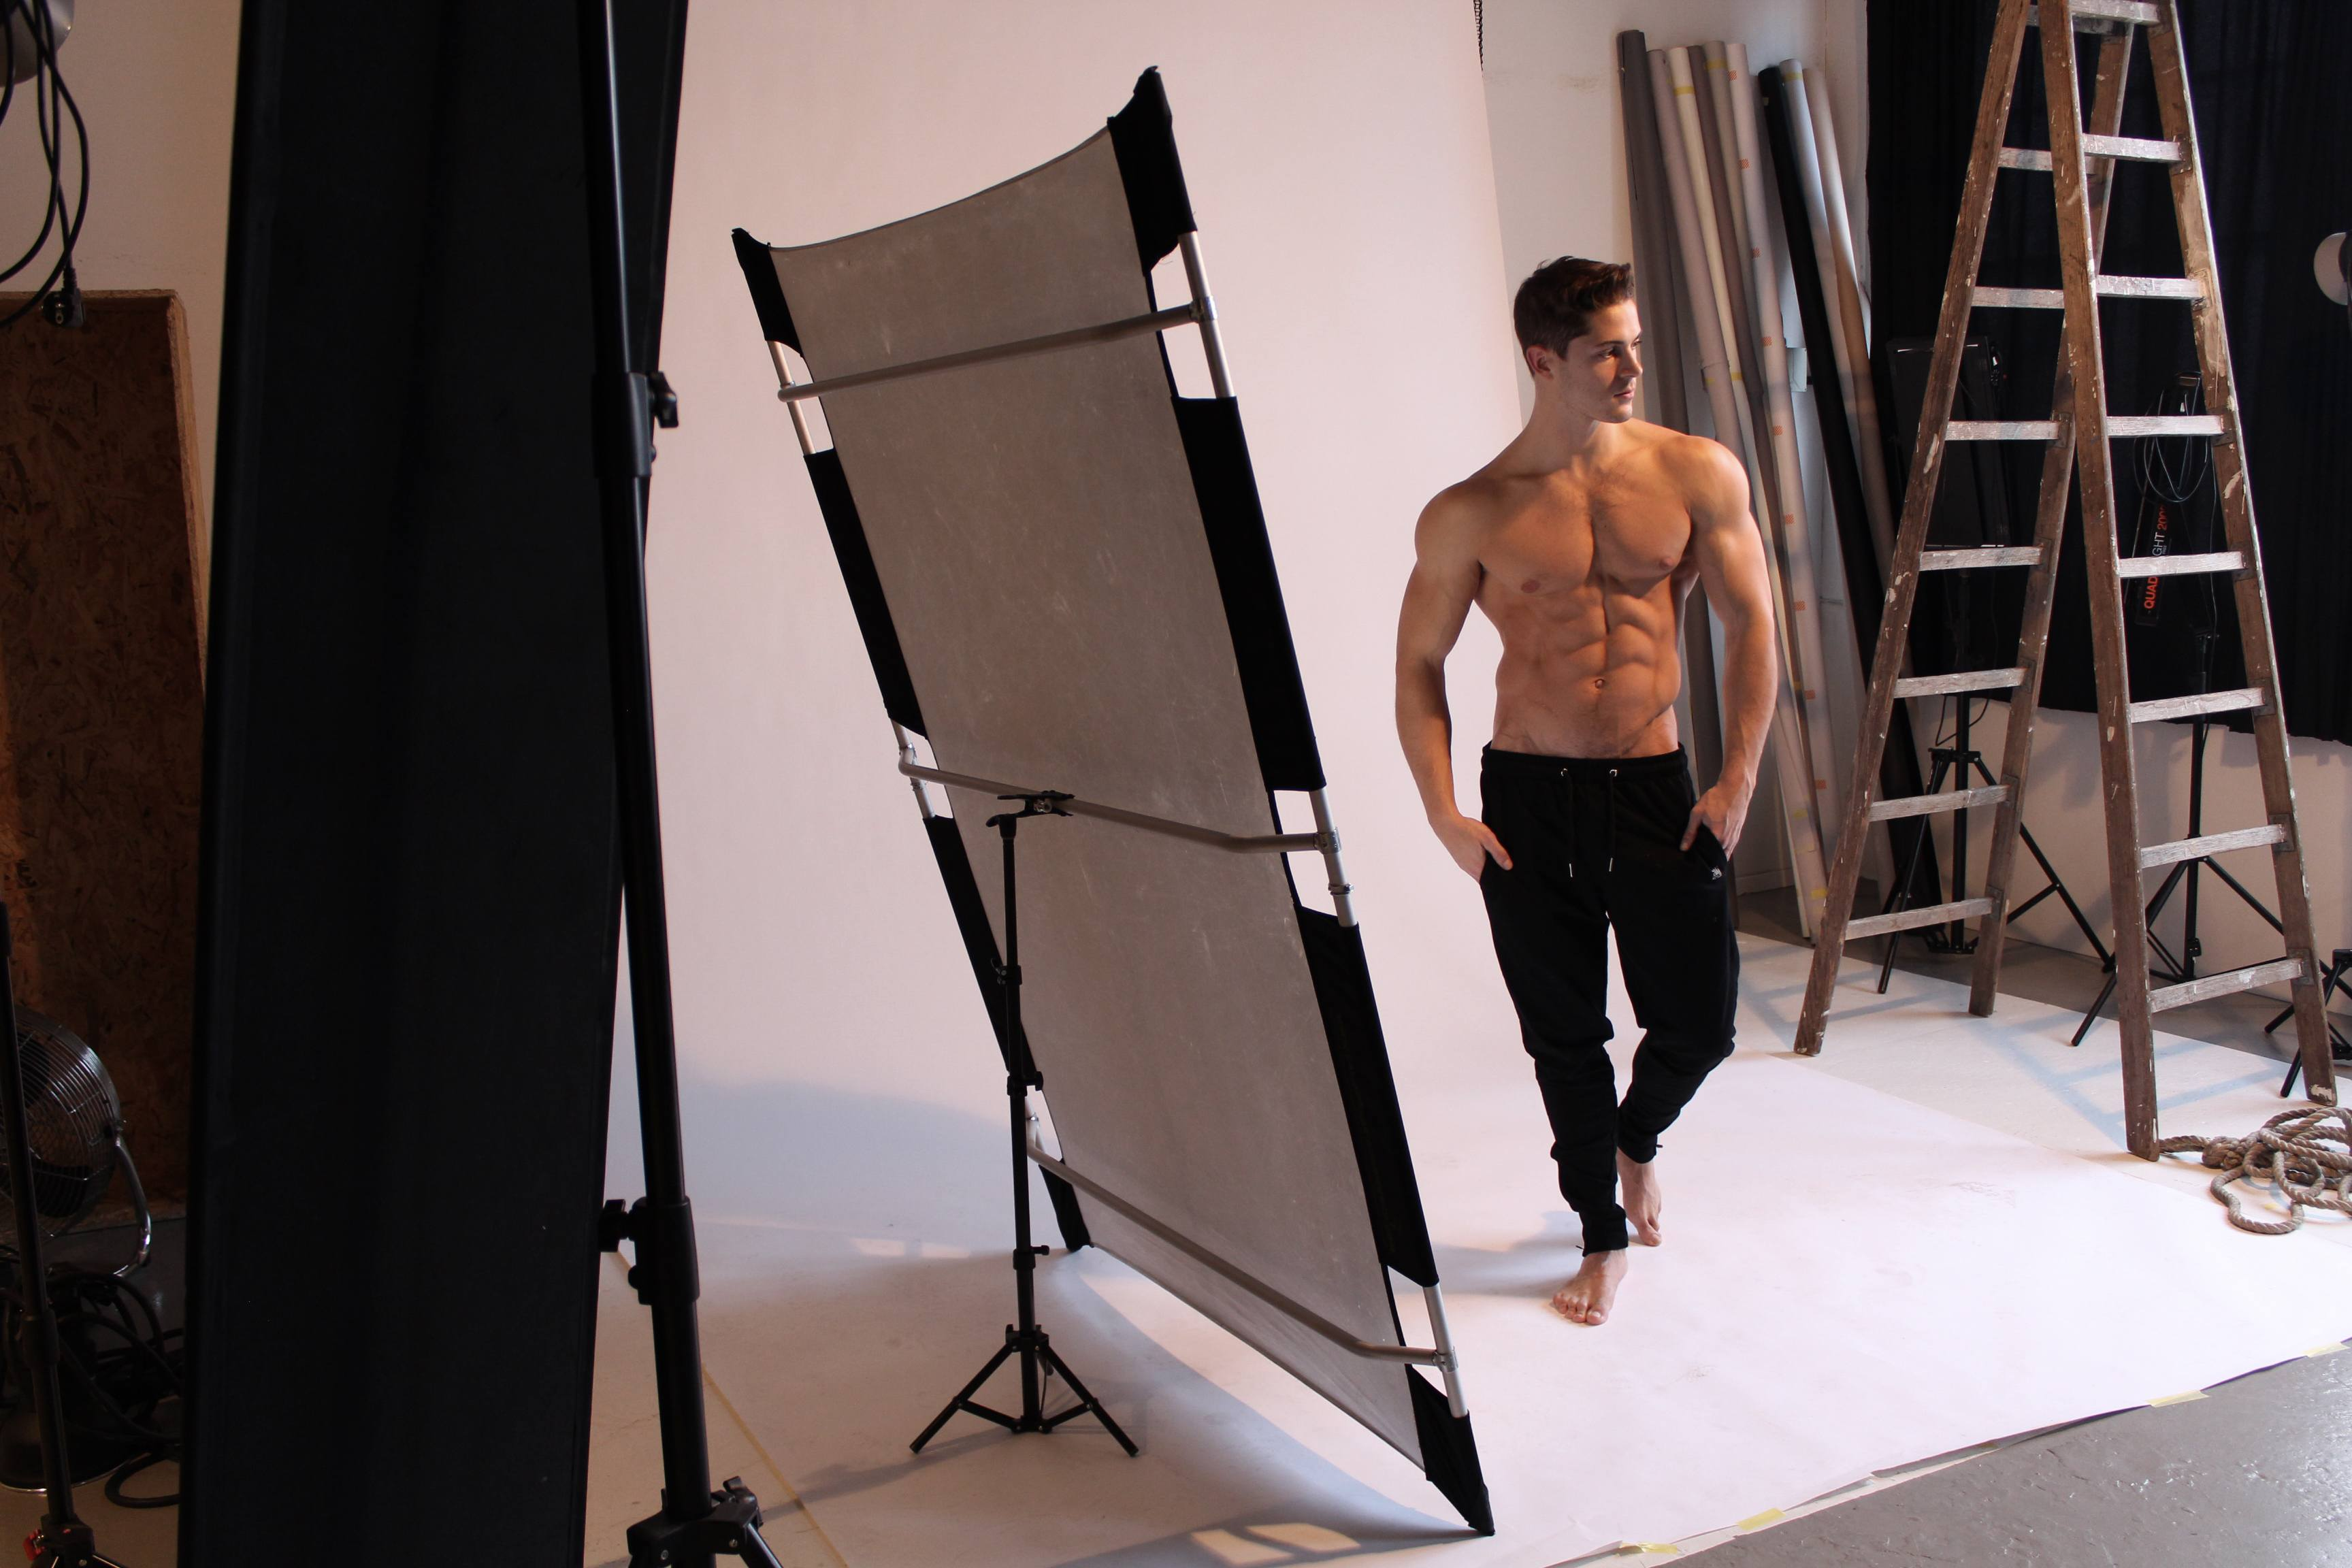 Gym pants by ZLC, worn by Aurelien.